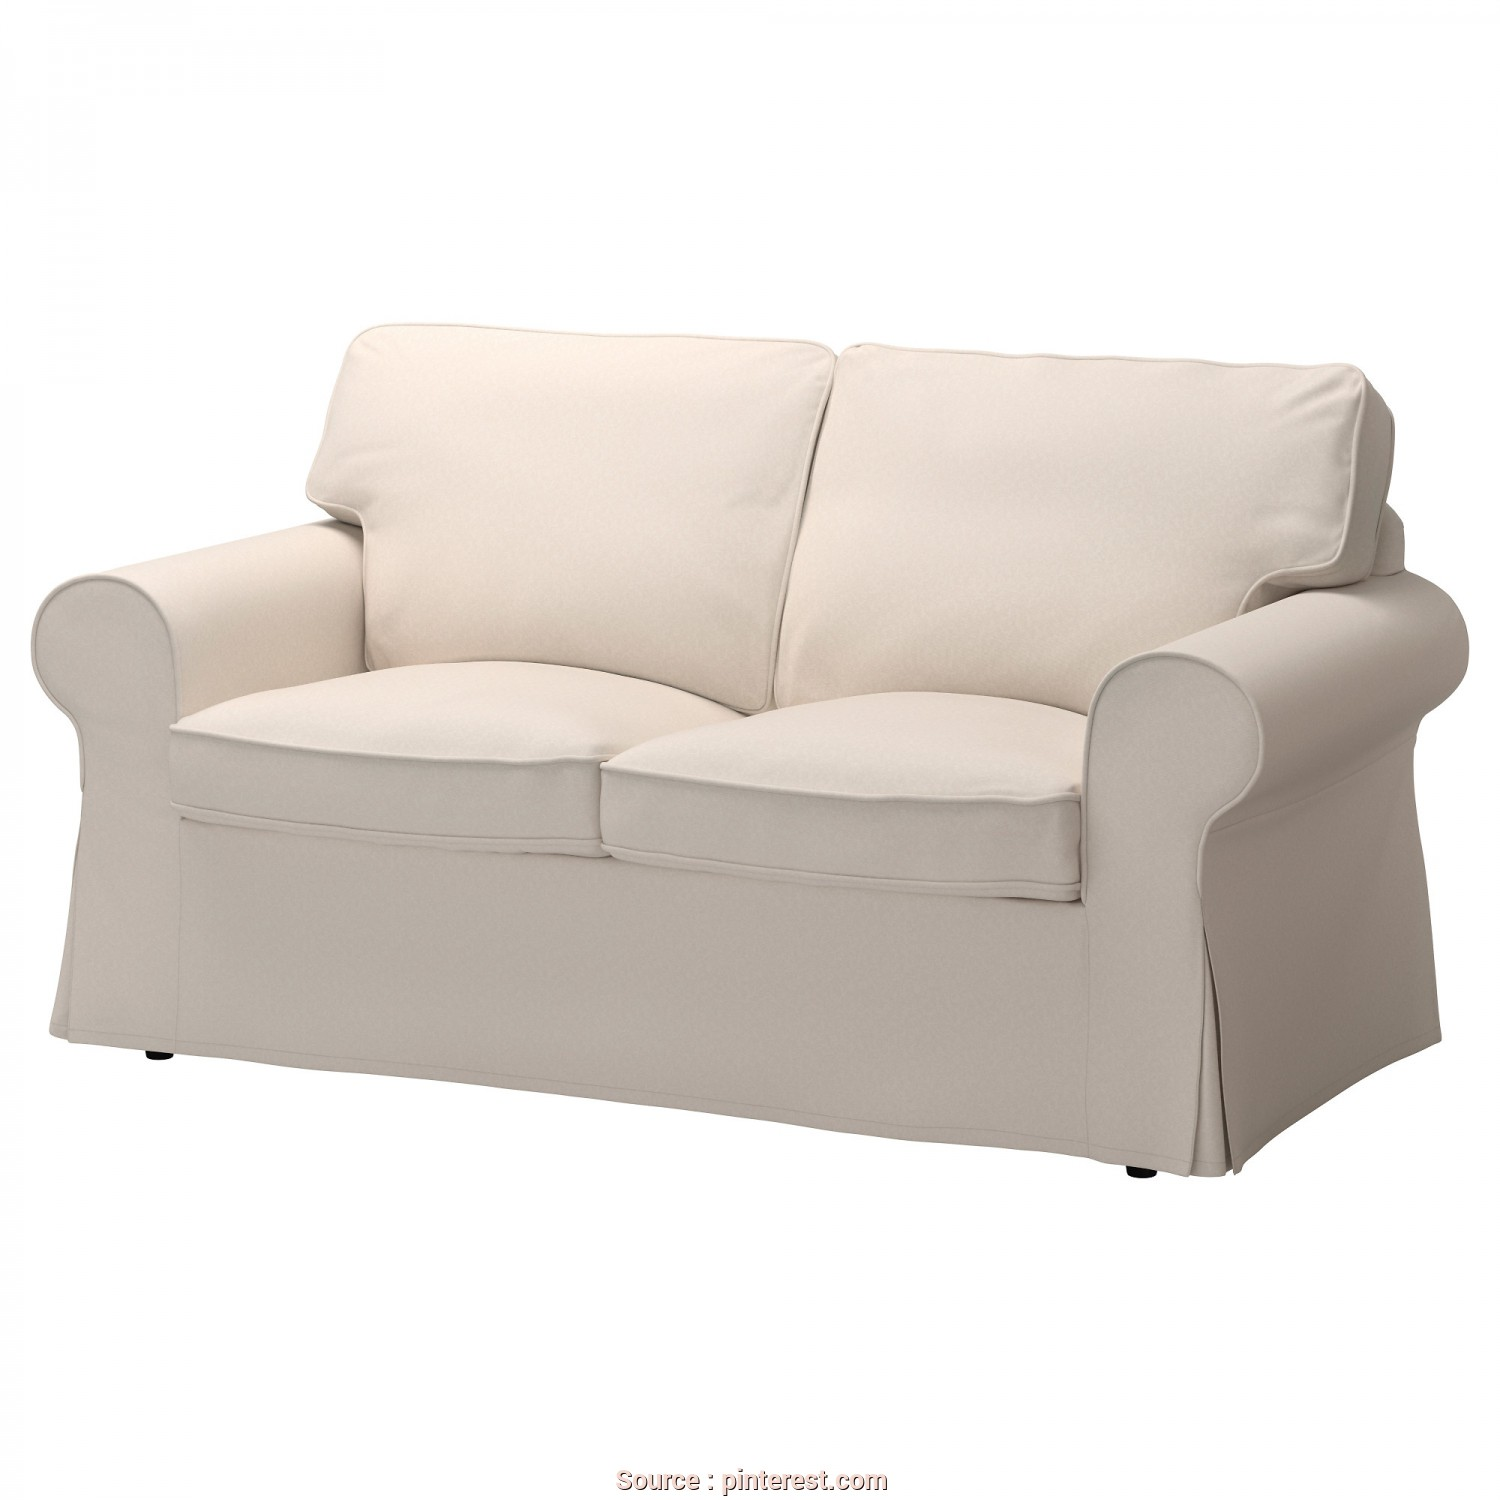 Divano Ektorp Ikea 2 Posti, Rustico IKEA, EKTORP, Loveseat, Lofallet Beige, , Seat Cushions Filled With High Resilience Foam, Polyester Fiber Wadding Provide Comfortable Support, Your